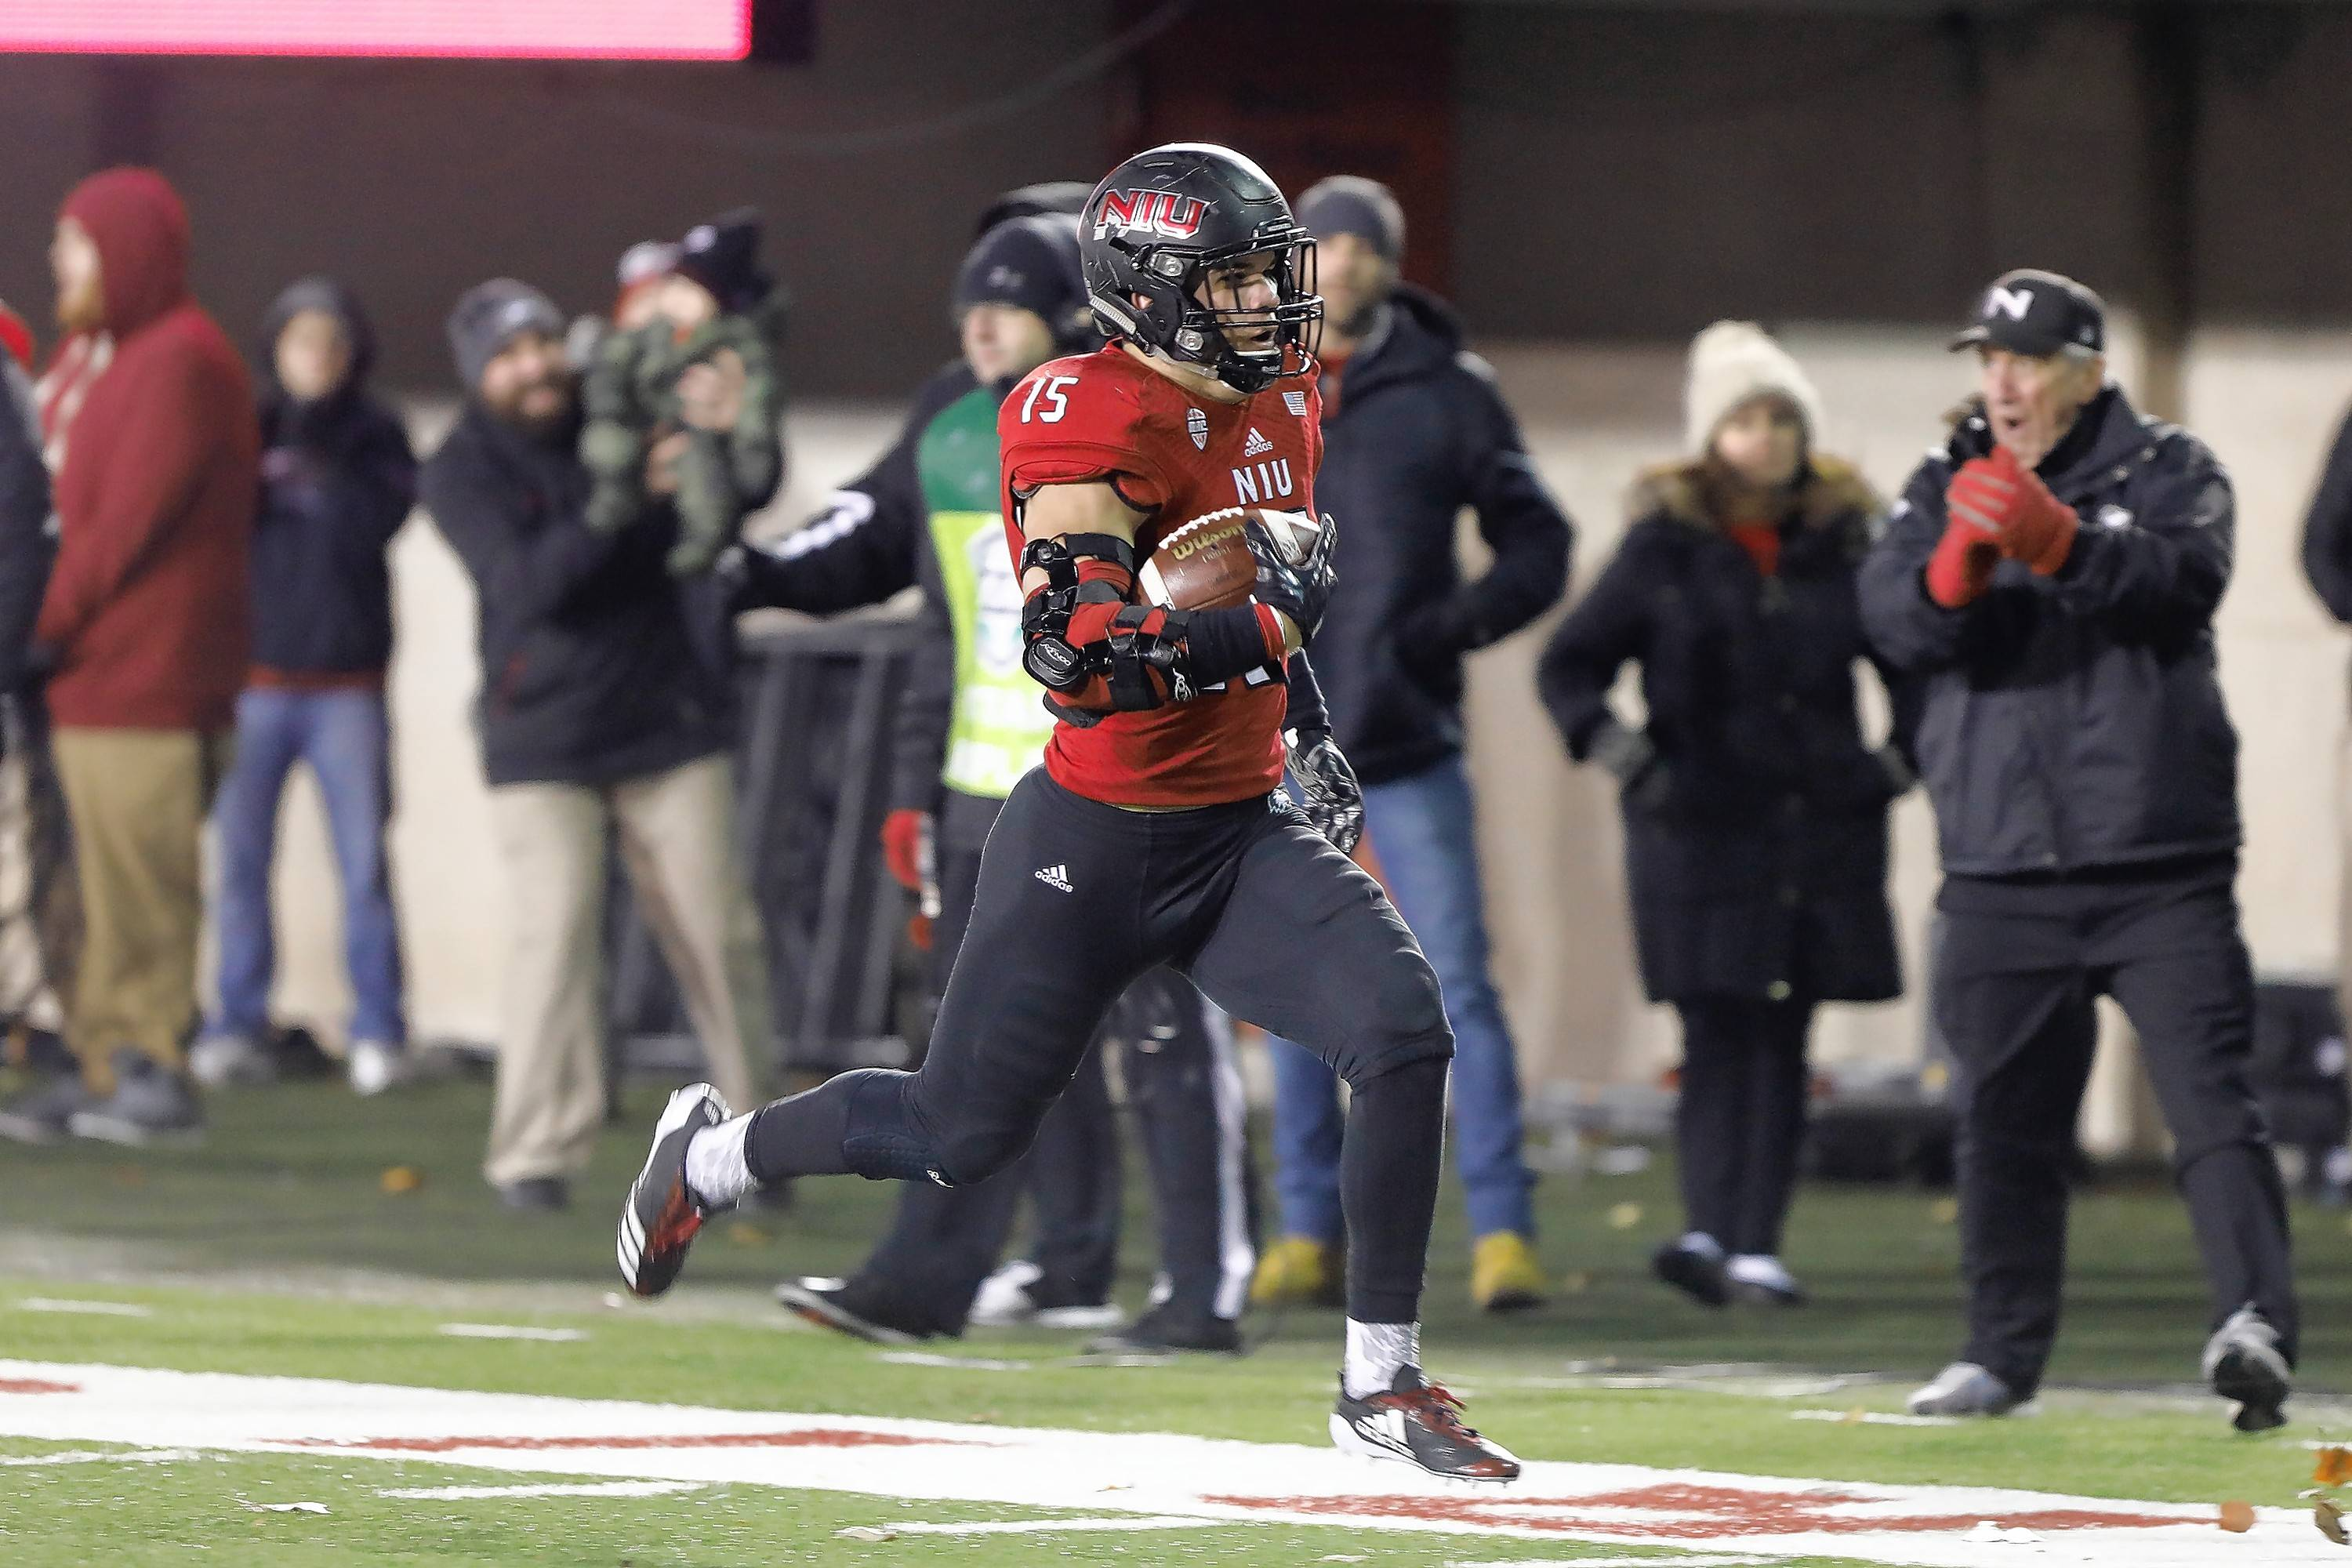 Sutton Smith returns a fumble for a touchdown in Wednesday's victory by Northern Illinois over Western Michigan at Huskie Stadium in DeKalb.